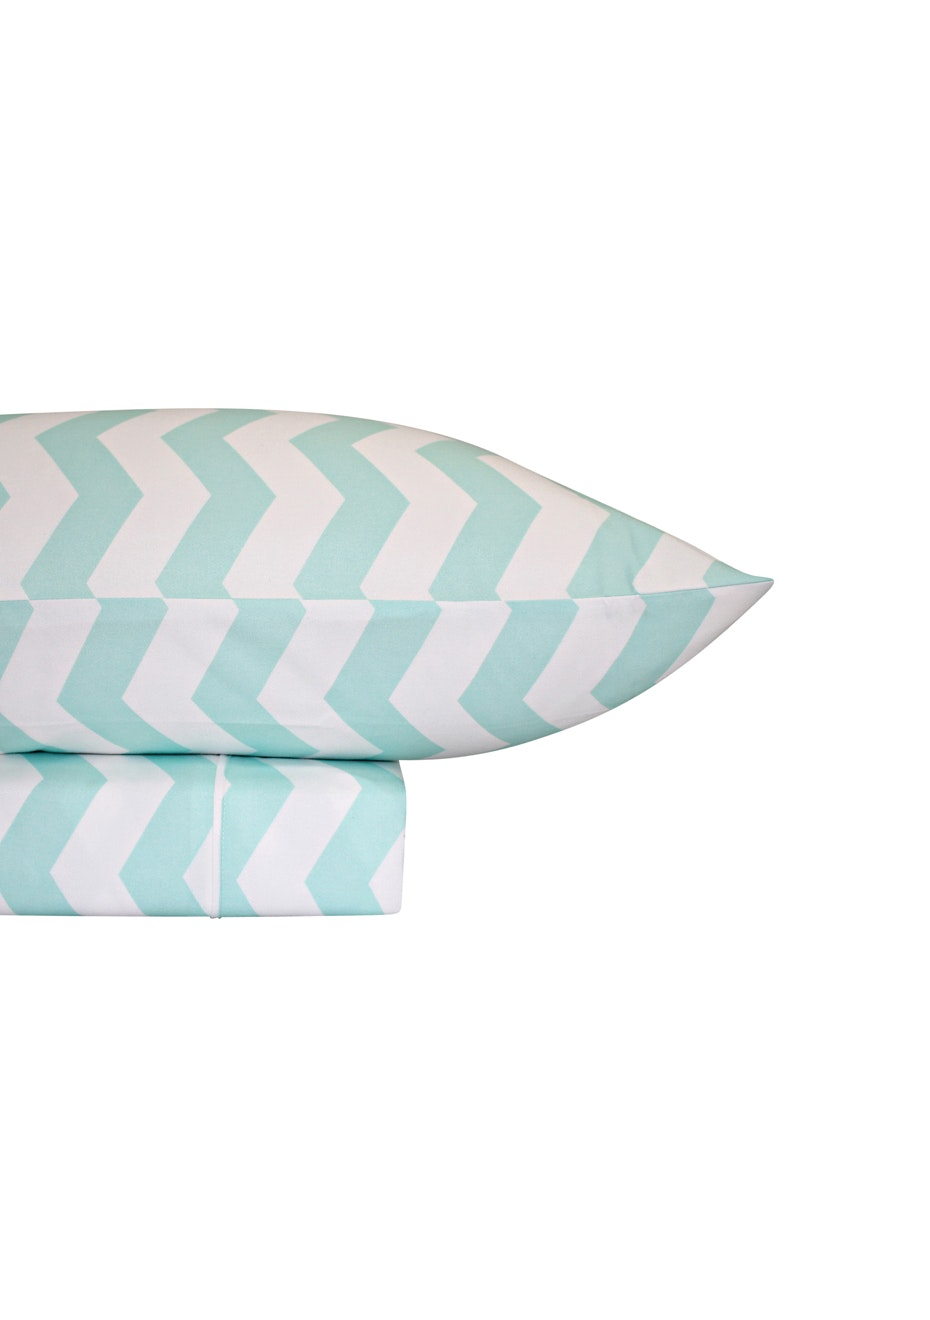 Thermal Flannel Sheet Sets - Chevron Design - Ice - King Single Bed